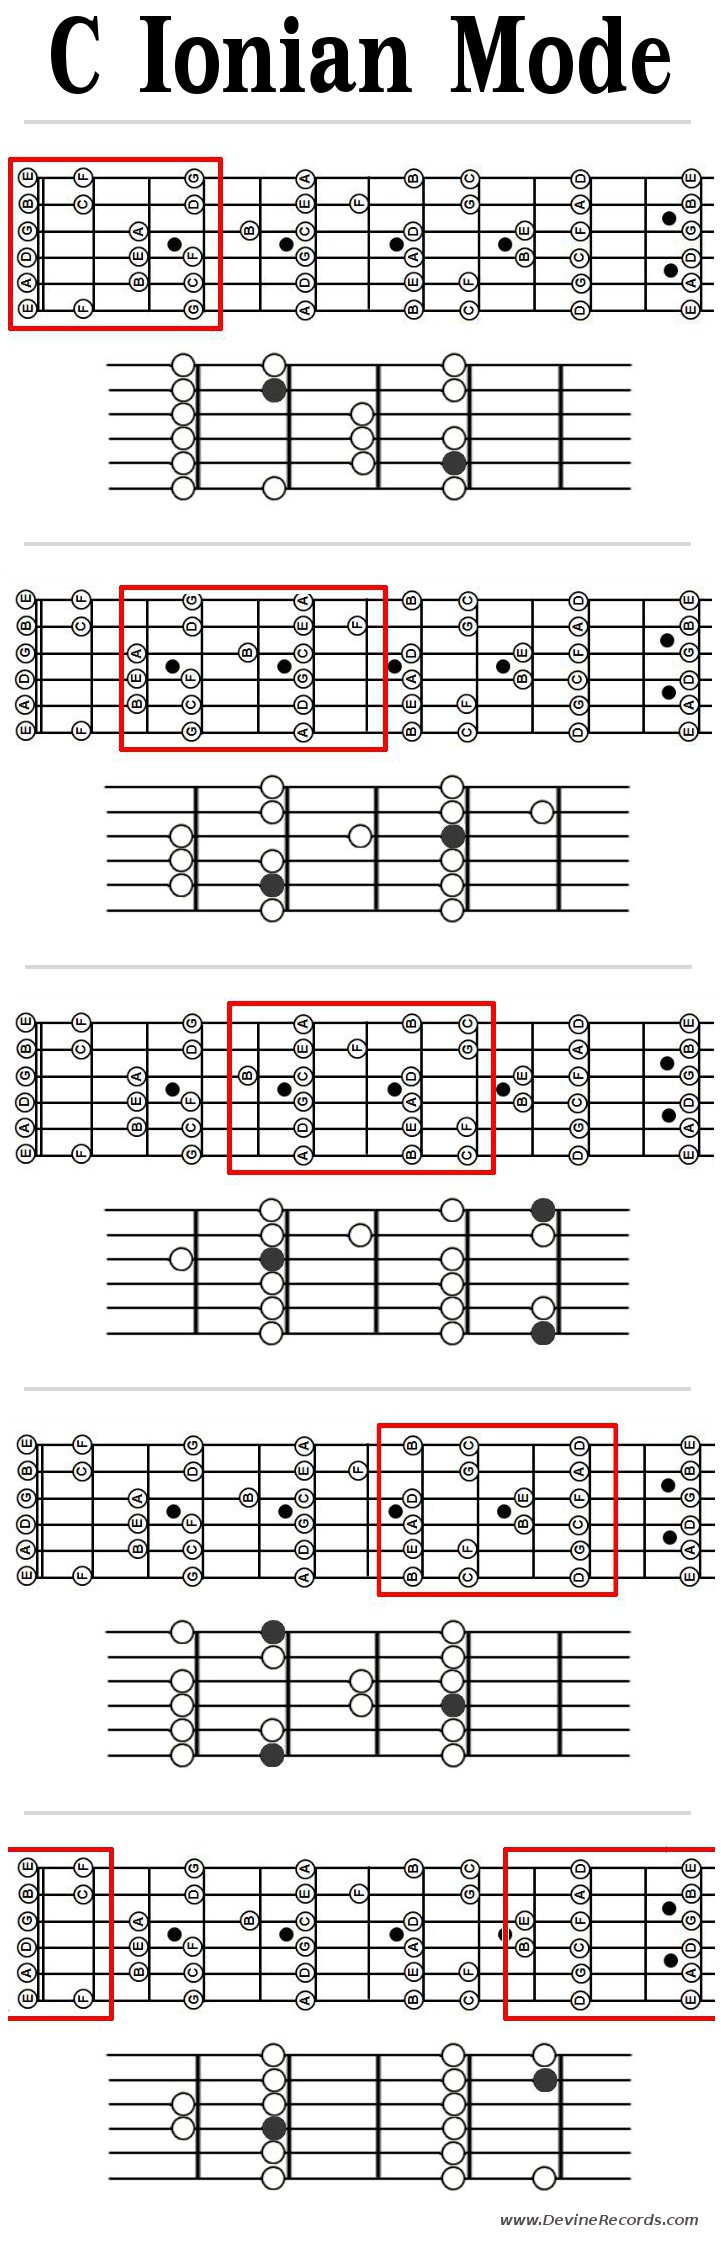 Guitar Ionian Mode Patterns In C Patterns With Root Notes And Note